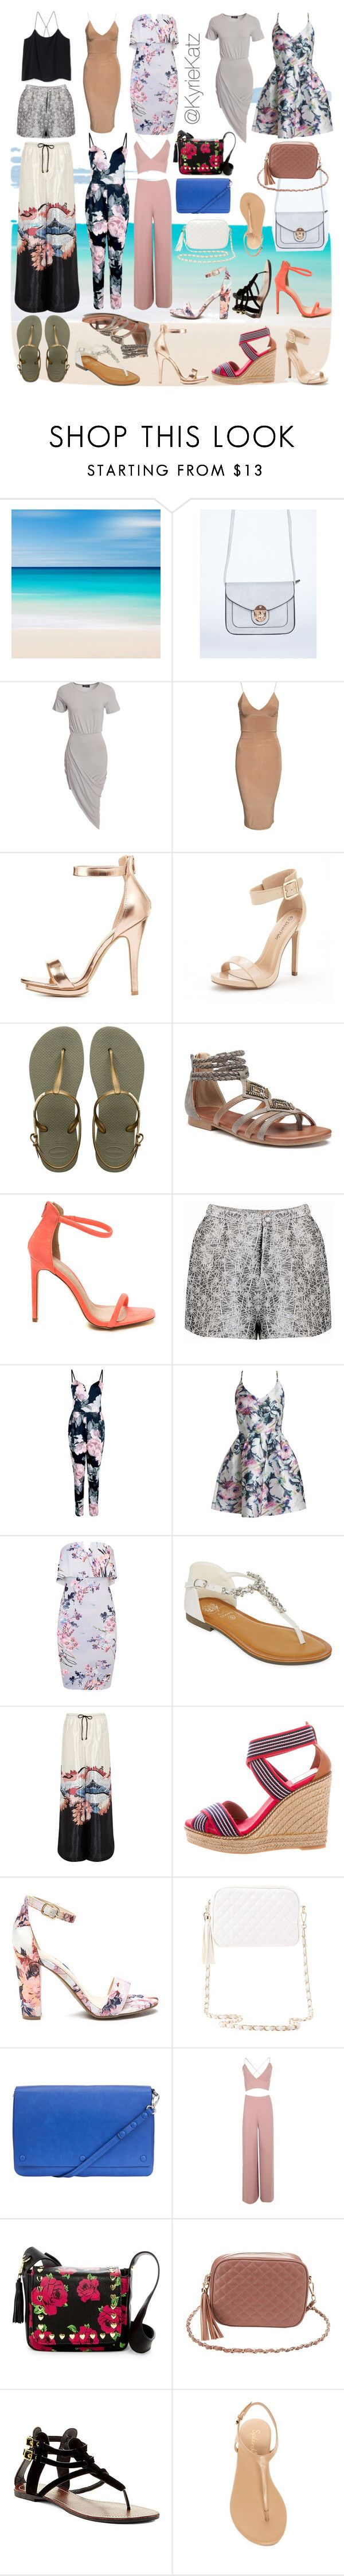 """Gwan Ah Jamaica (Special Request)"" by kyriekatz ❤ liked on Polyvore featuring Club L, Charlotte Russe, Havaianas, SO, Boohoo, Sans Souci, GC Shoes, River Island, Tory Burch and Kin by John Lewis"